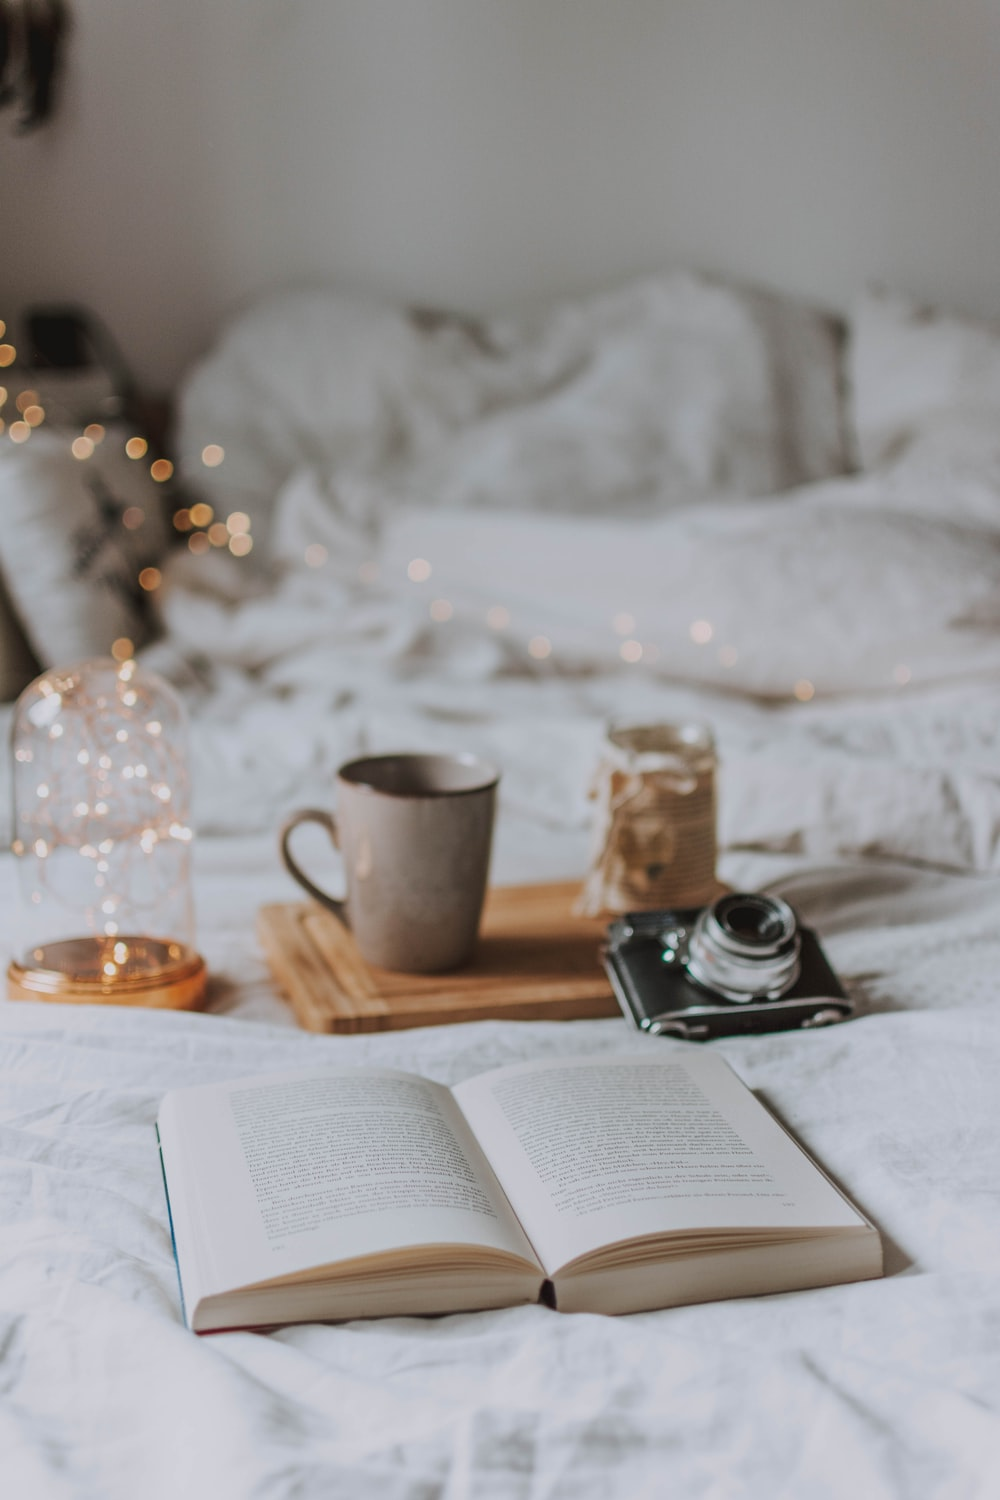 Coffee Table Books Pictures Download Free Images On Unsplash